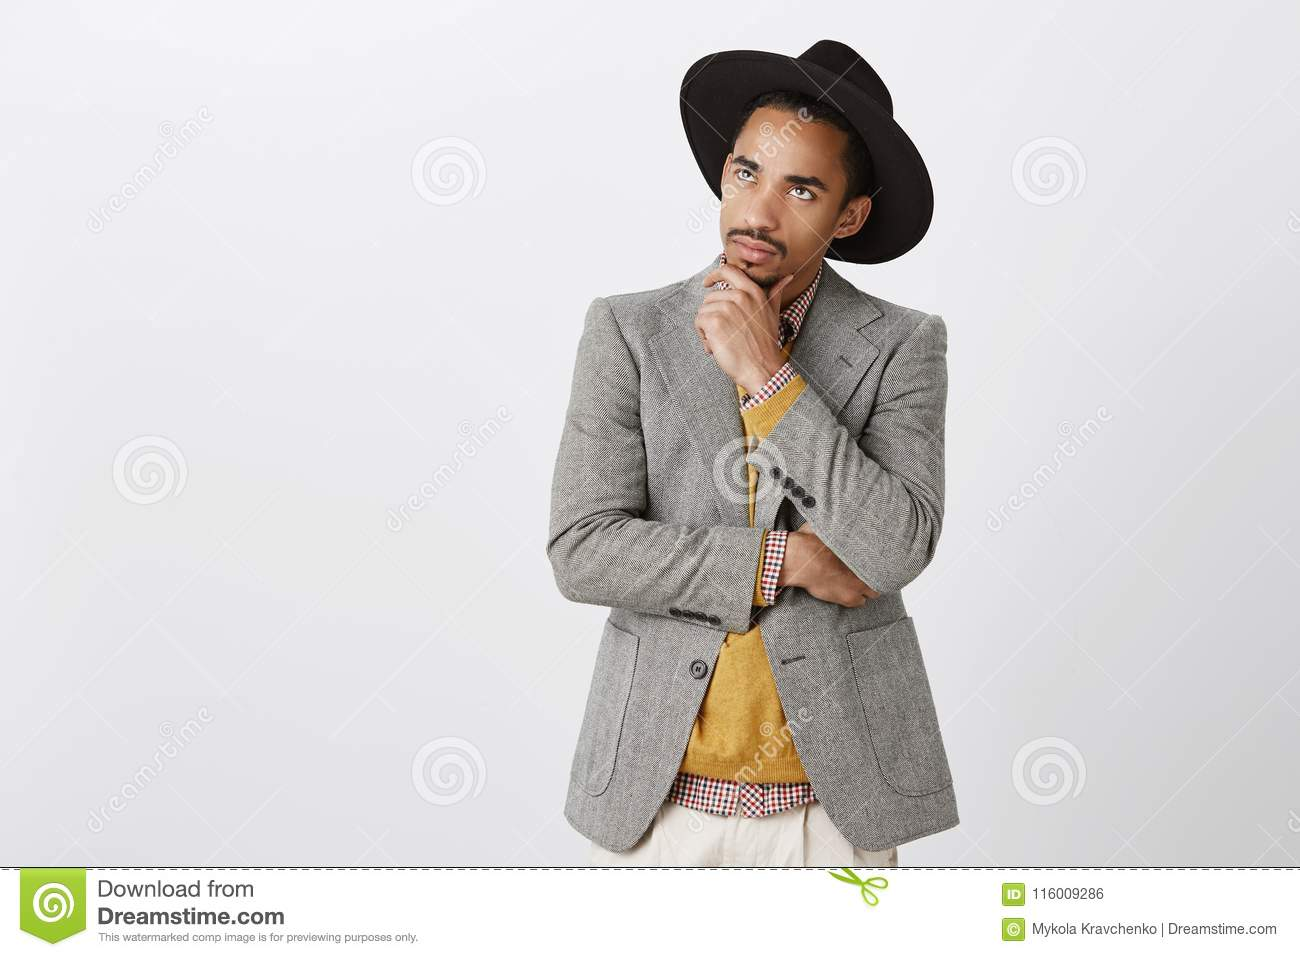 Guy focused on thoughts, making hard decision. Concentrated serious dark-skinned male freelancer in black hat and